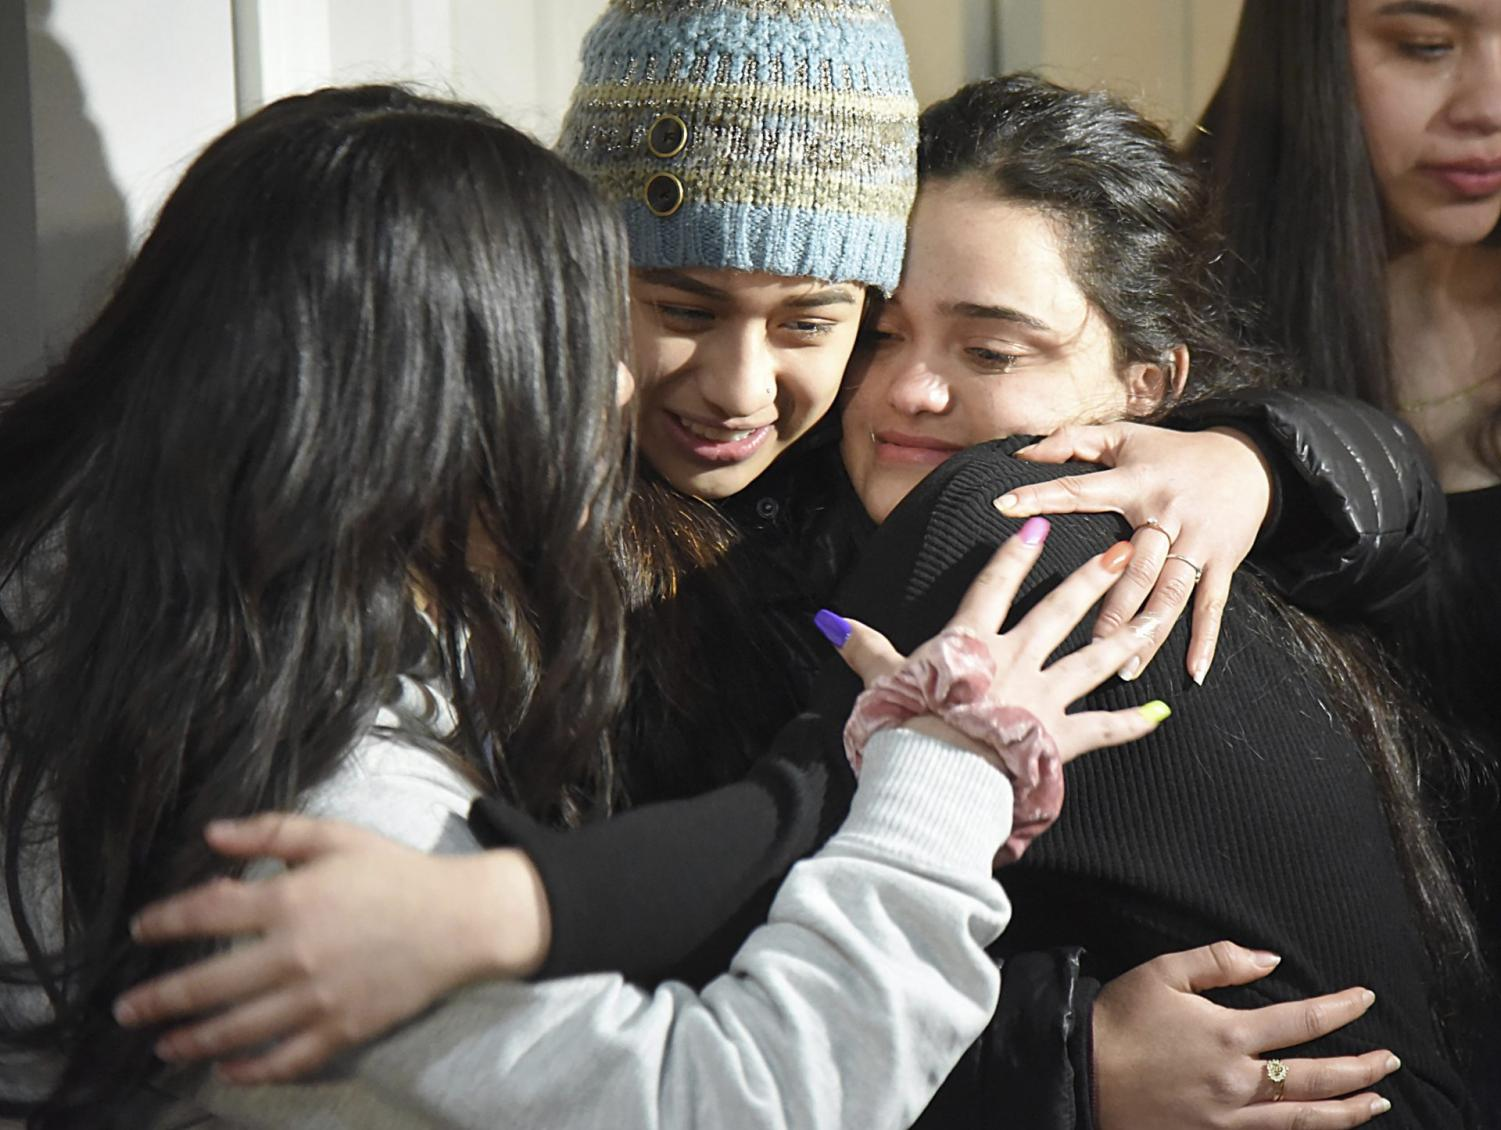 Meydi Guzman, right, a Crystal Lake Central High School senior who was in U.S. Immigration and Customs custody for several months, embraces friends as she is welcomed back at the home of school counselor Sara Huser on Thursday, Feb. 13, 2020, in Crystal Lake, Ill. Guzaman's supporters plan to continue a fight against her deportation to Honduras.